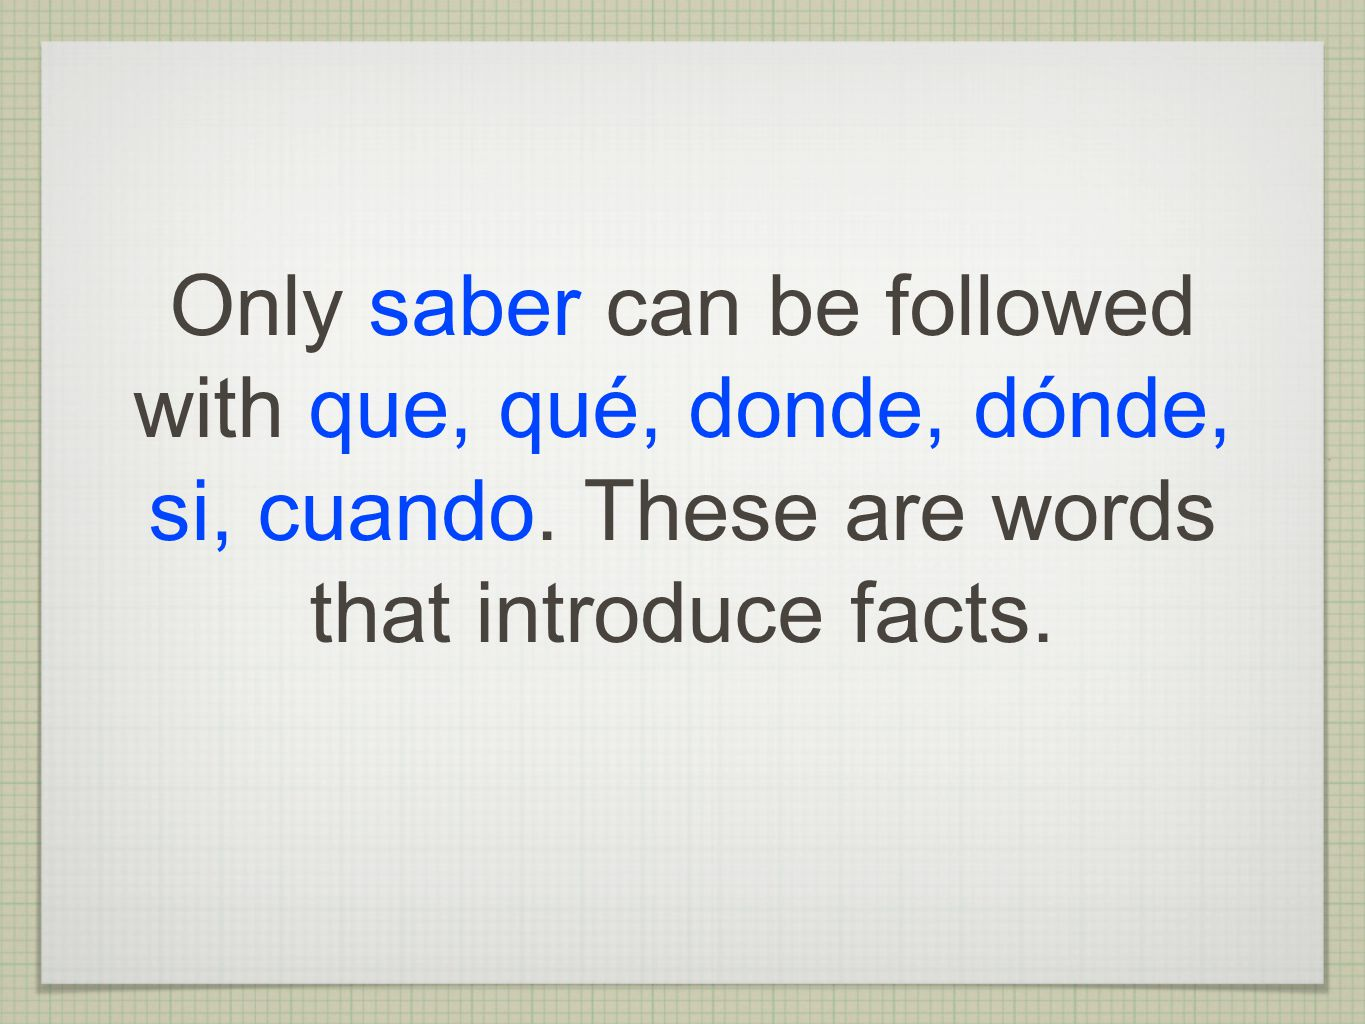 Only saber can be followed with que, qué, donde, dónde, si, cuando. These are words that introduce facts.